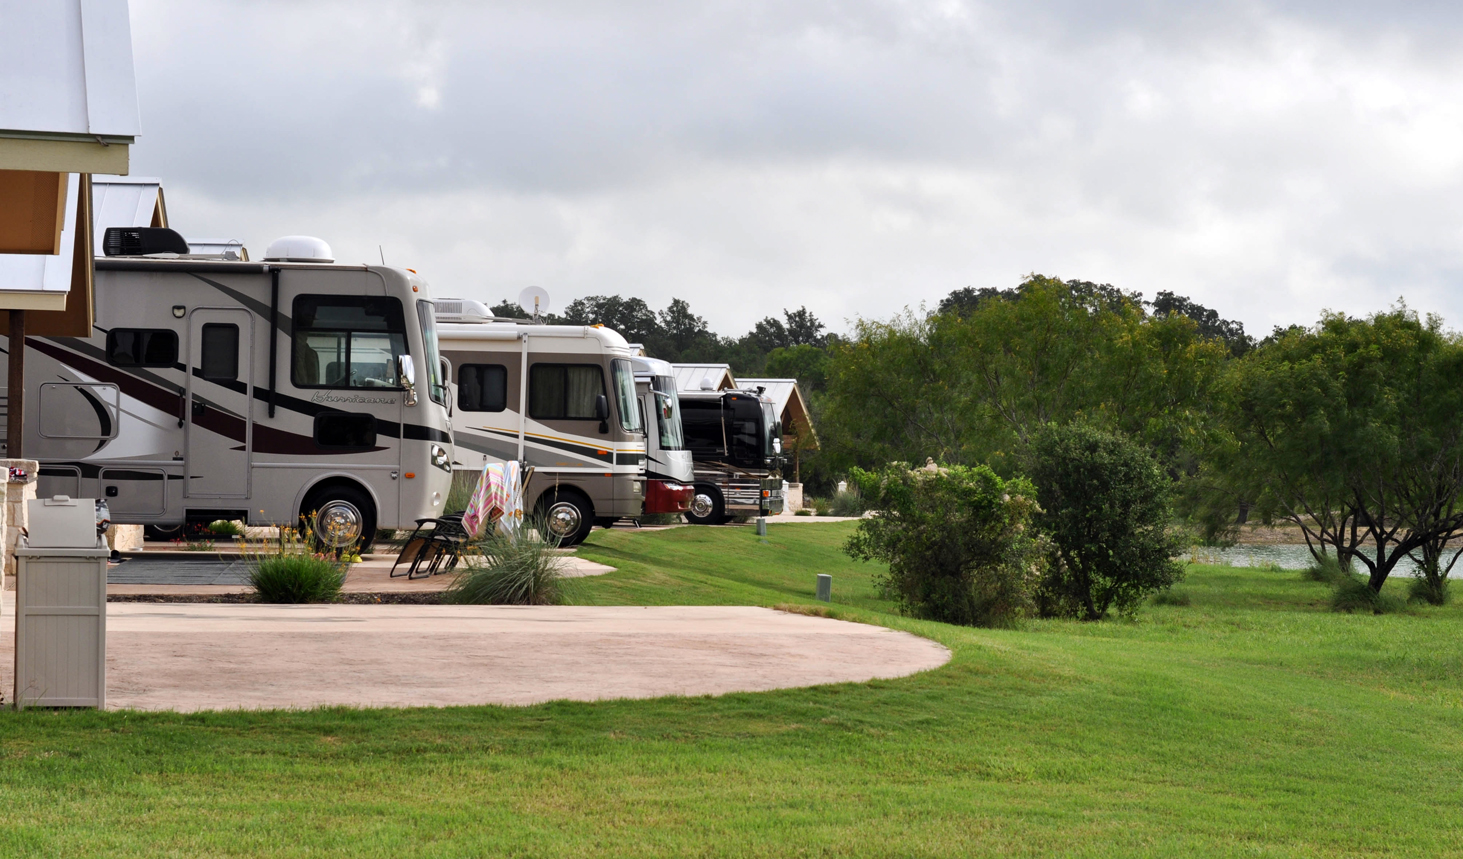 full hookup camping near me Full hookup campgrounds near me - features & amenities of gateway park campground when you've had enough of the hustle and bustle, retreat to your peaceful rv camping site.